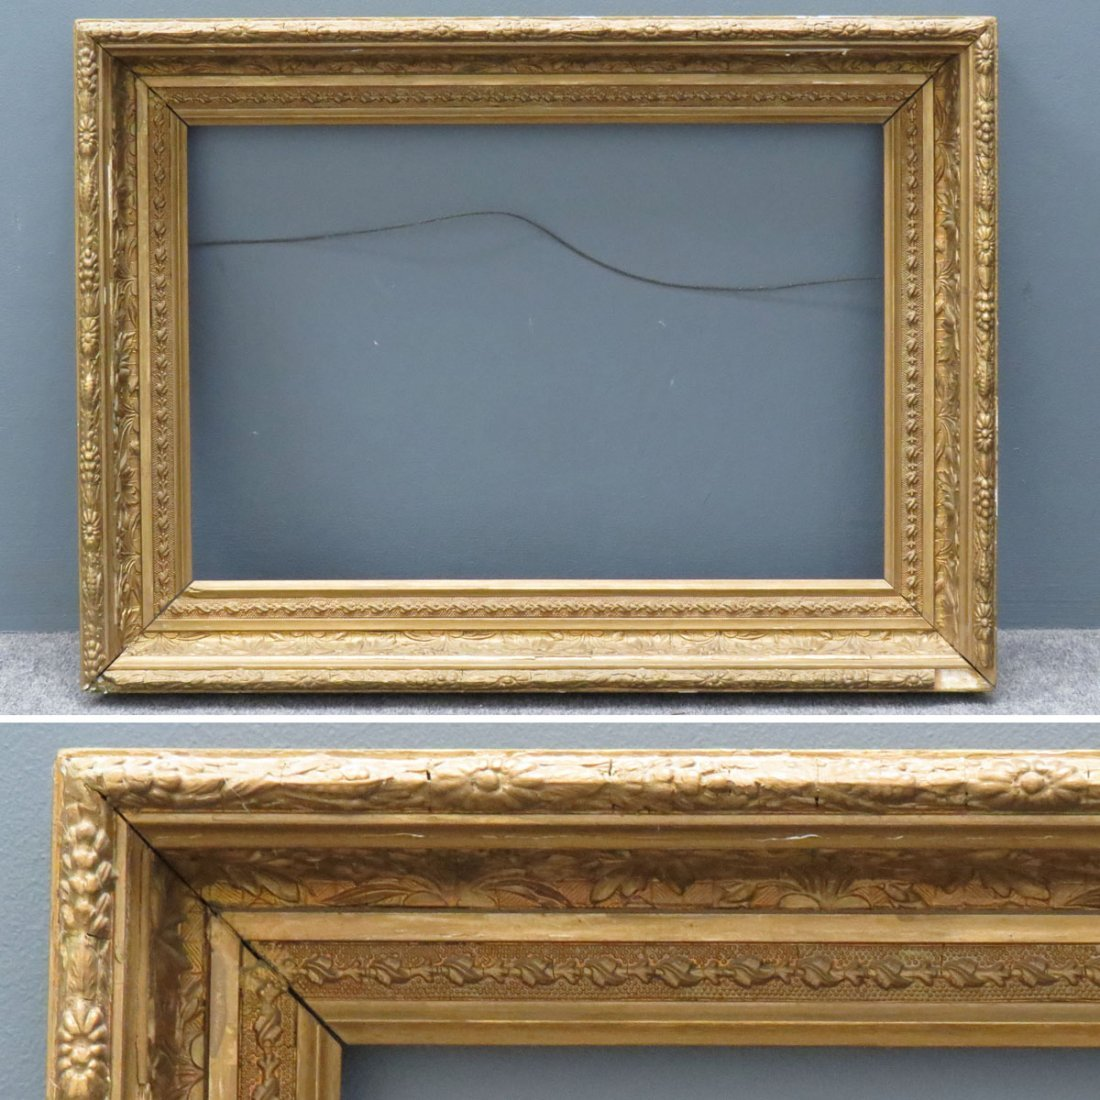 VINTAGE MOLDED, PAINTED, AND GILT FRAME